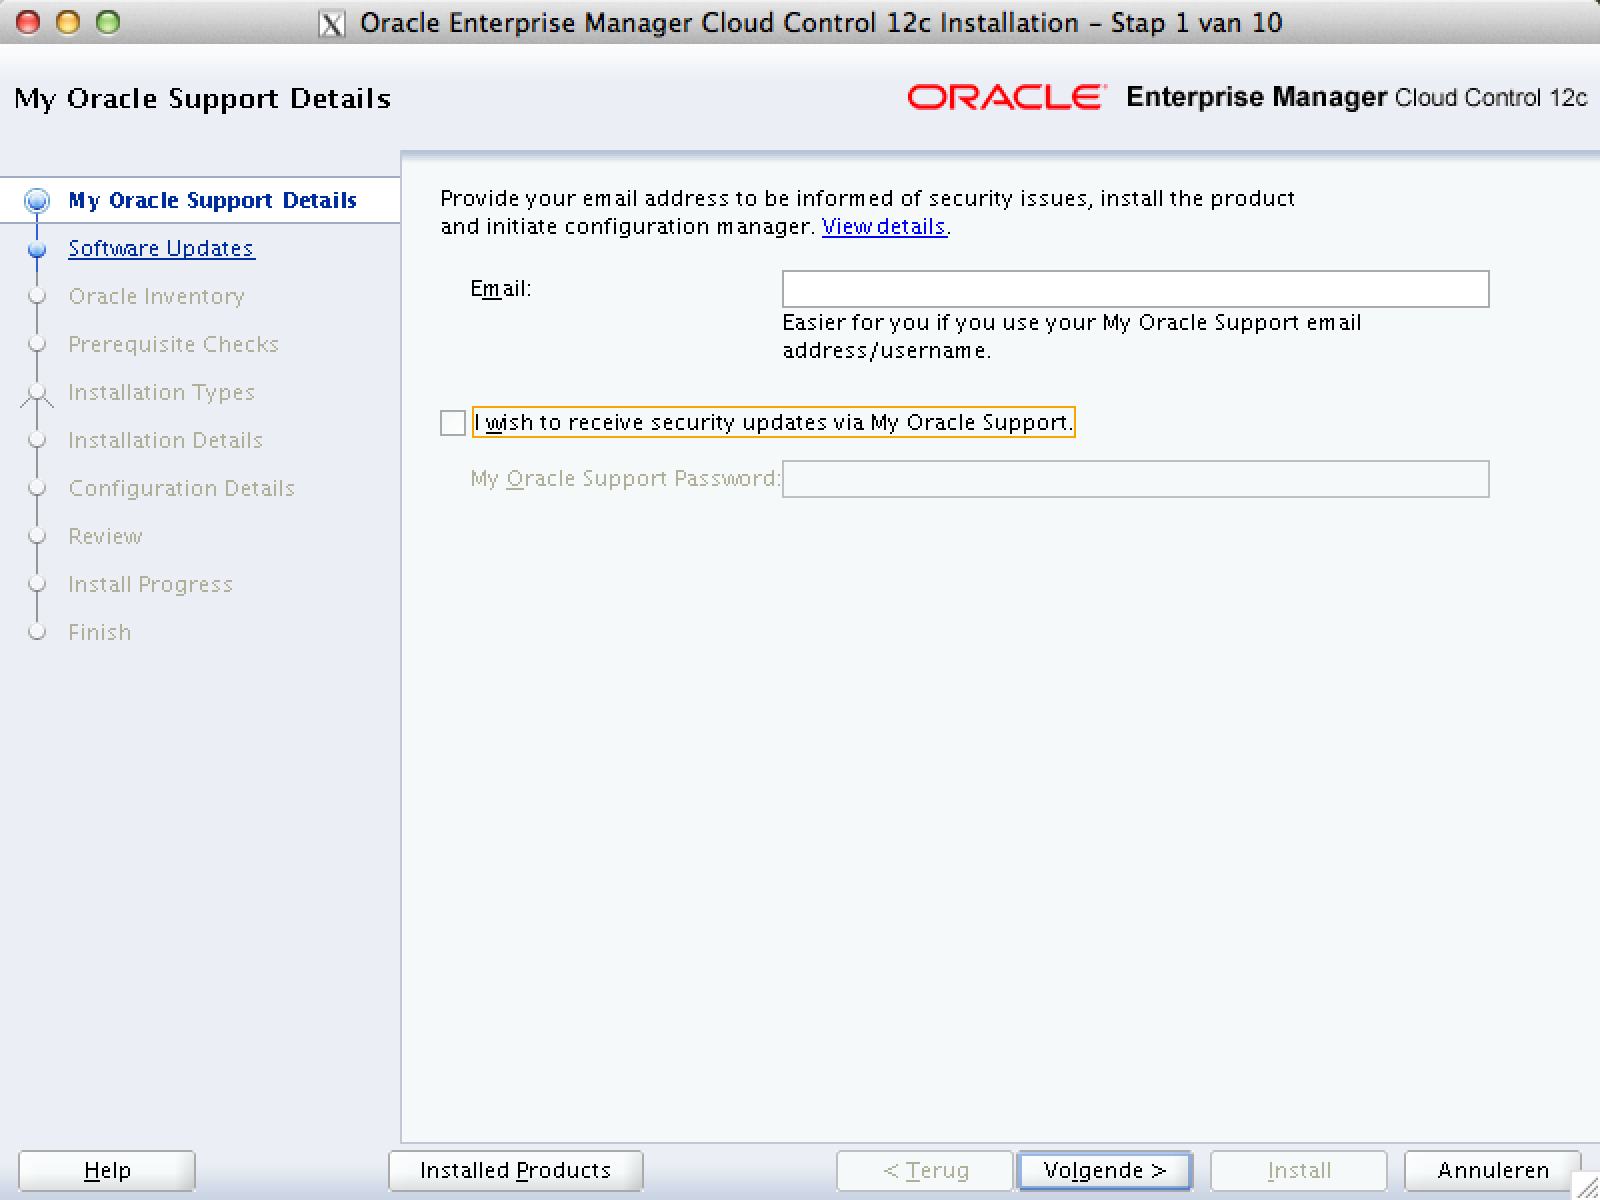 Installation Enterprise Manager Cloud Control 12c Release 3 12.1.0.3